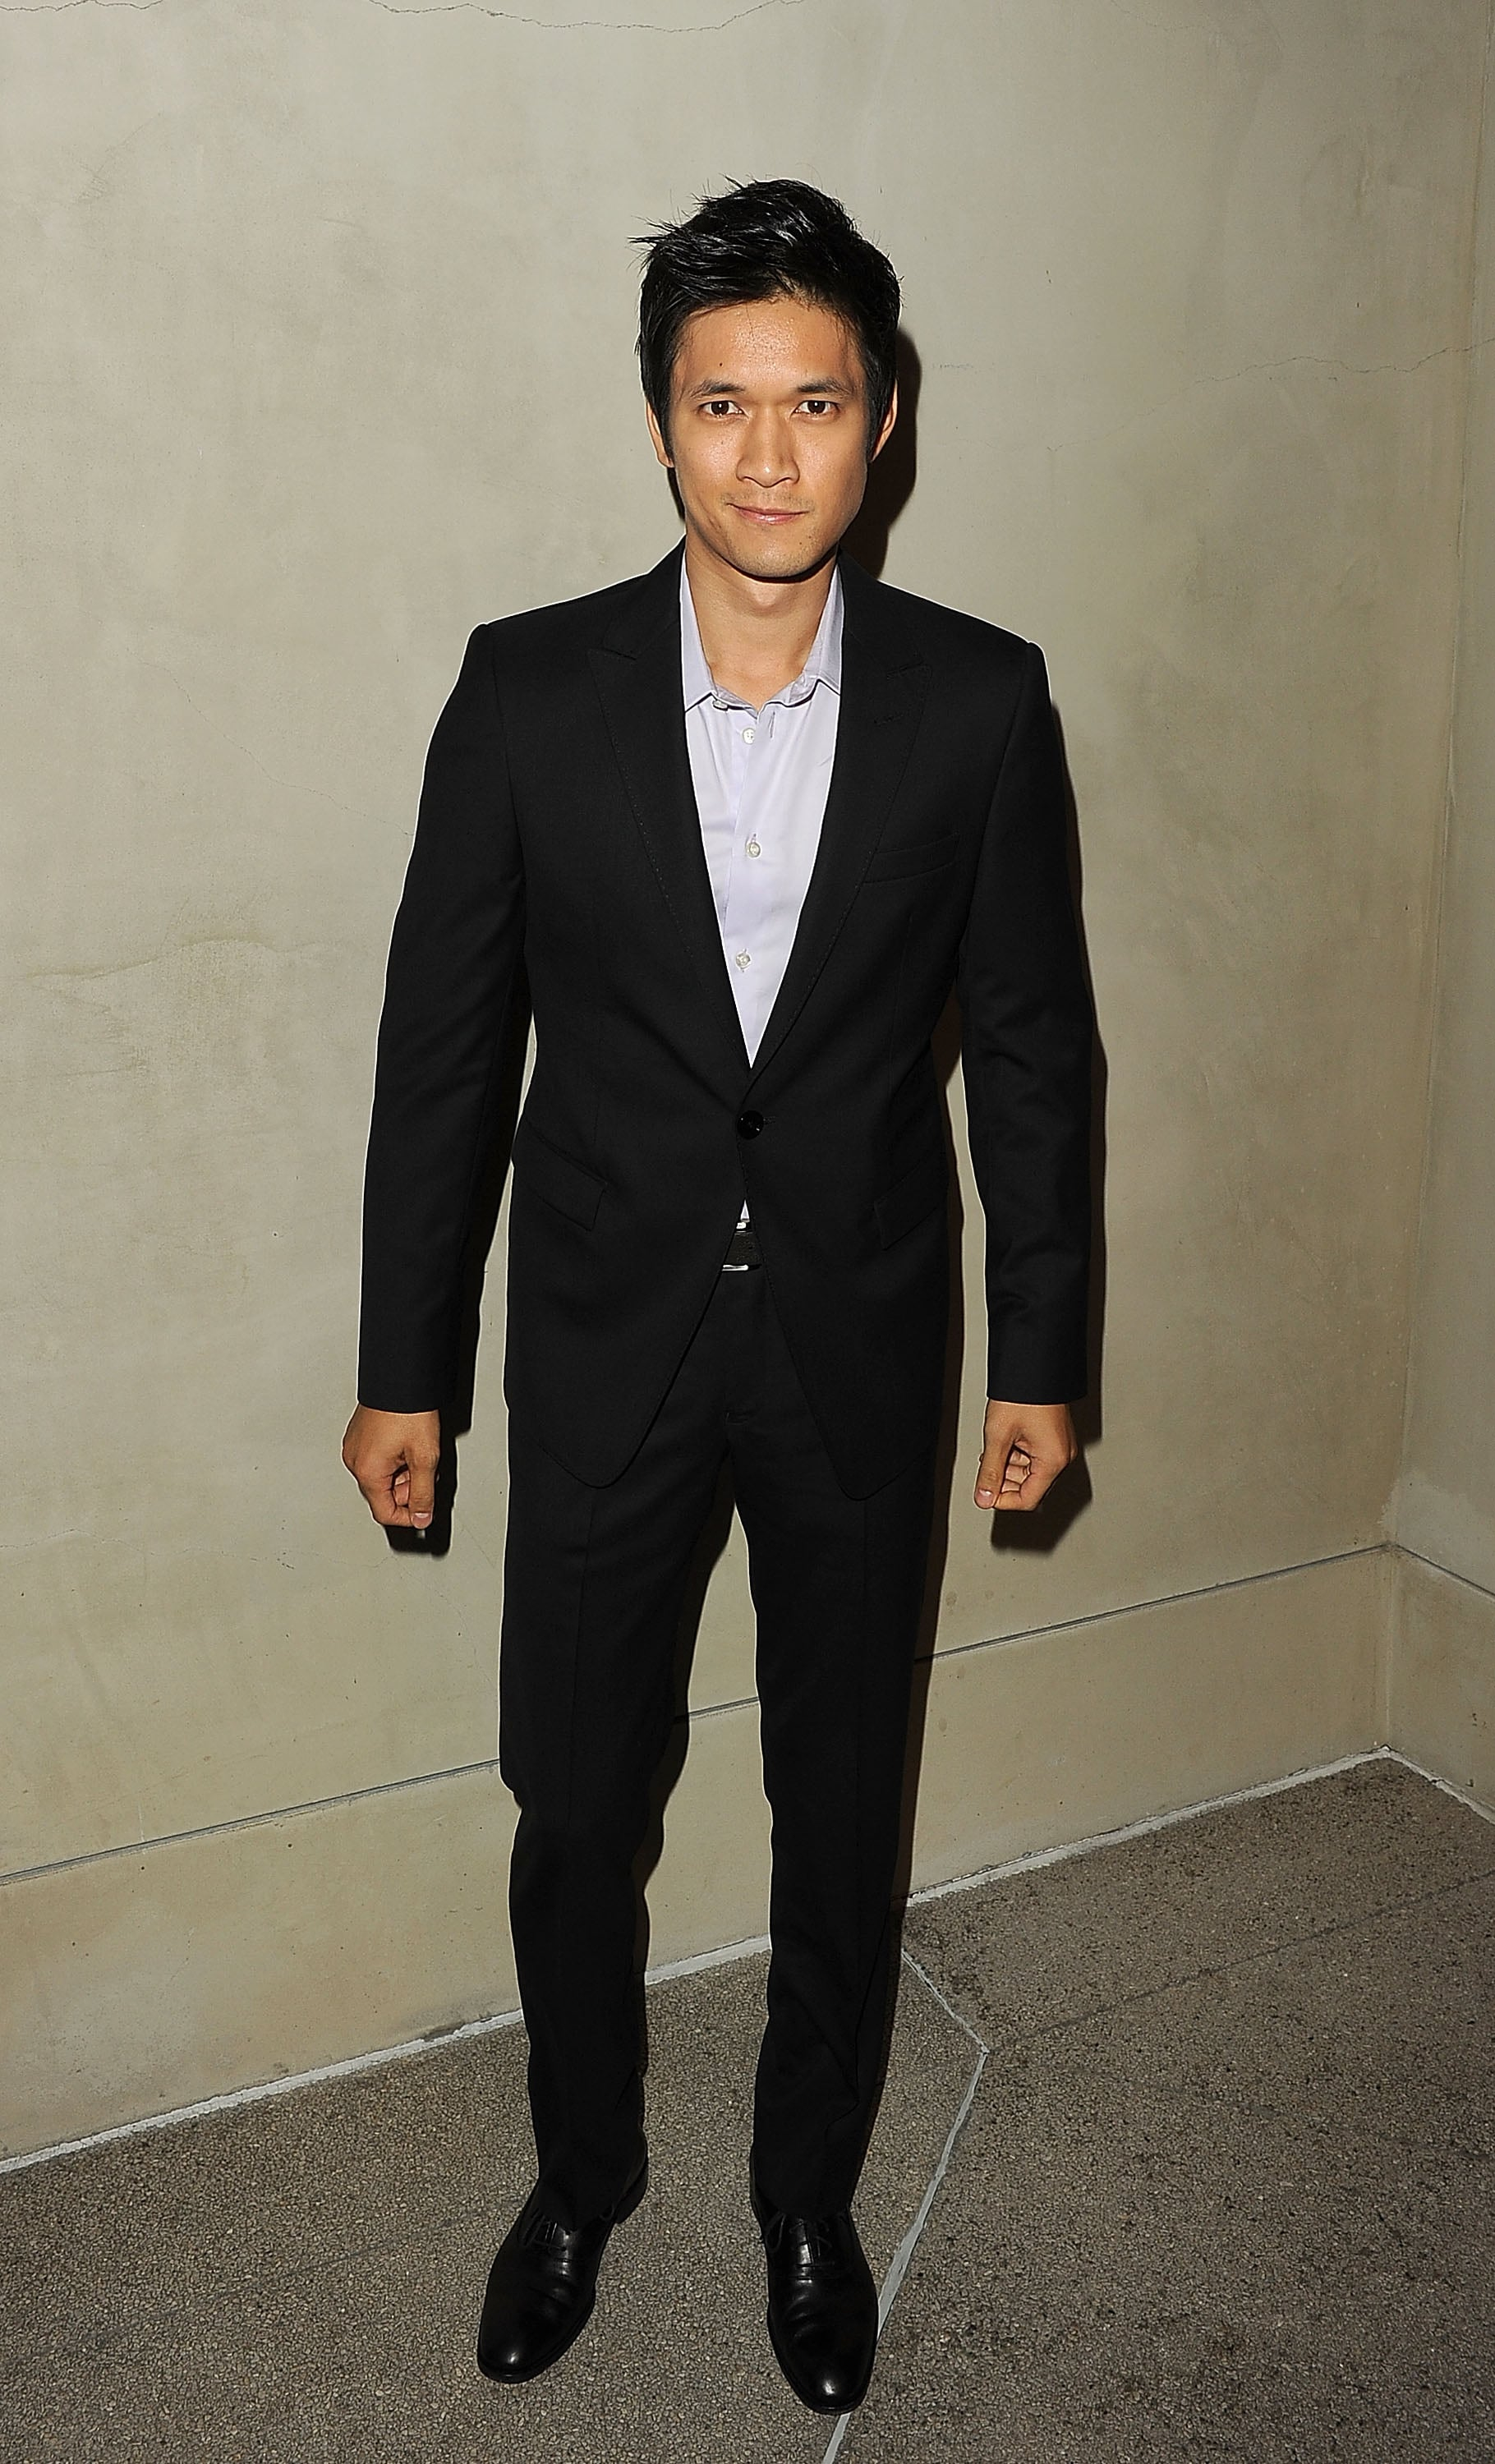 Harry Shum Jr. at a private event in LA.